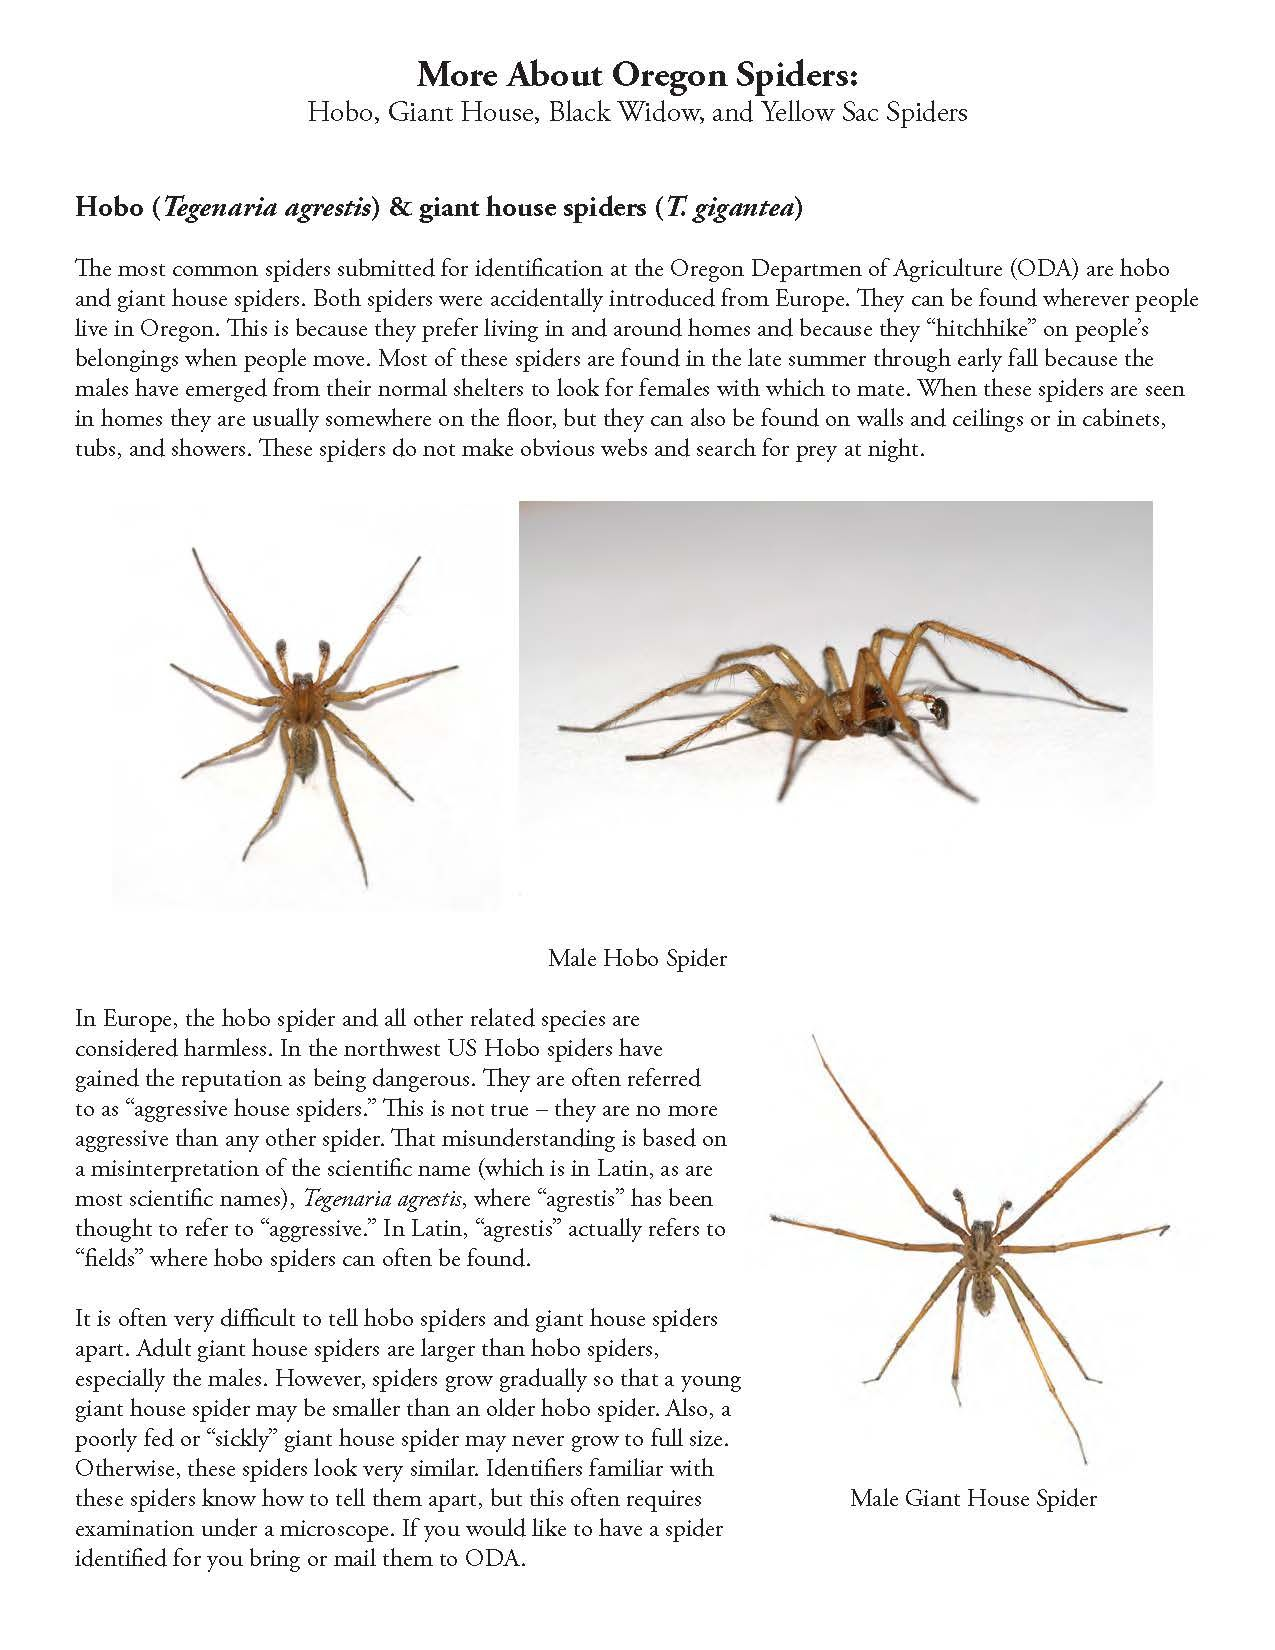 More About Oregon Spiders Hobo, Giant House, Black Widow, And